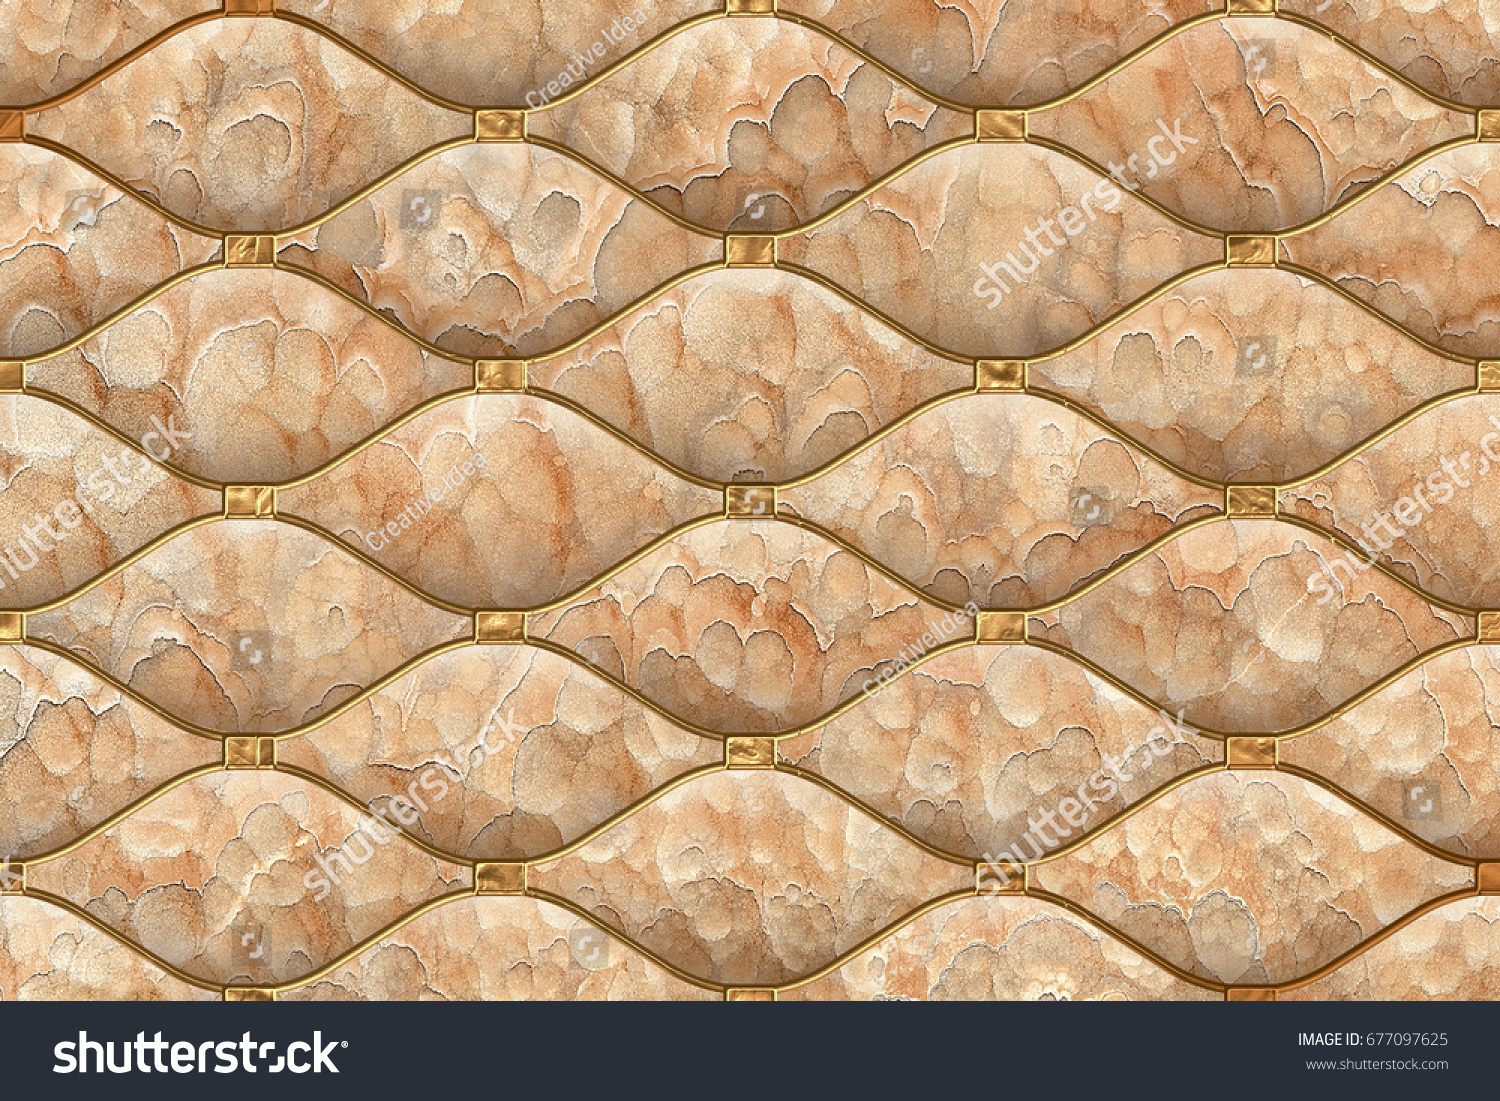 Abstract Home Decorative 3 D Wall Tiles Stock Illustration 677097625 ...